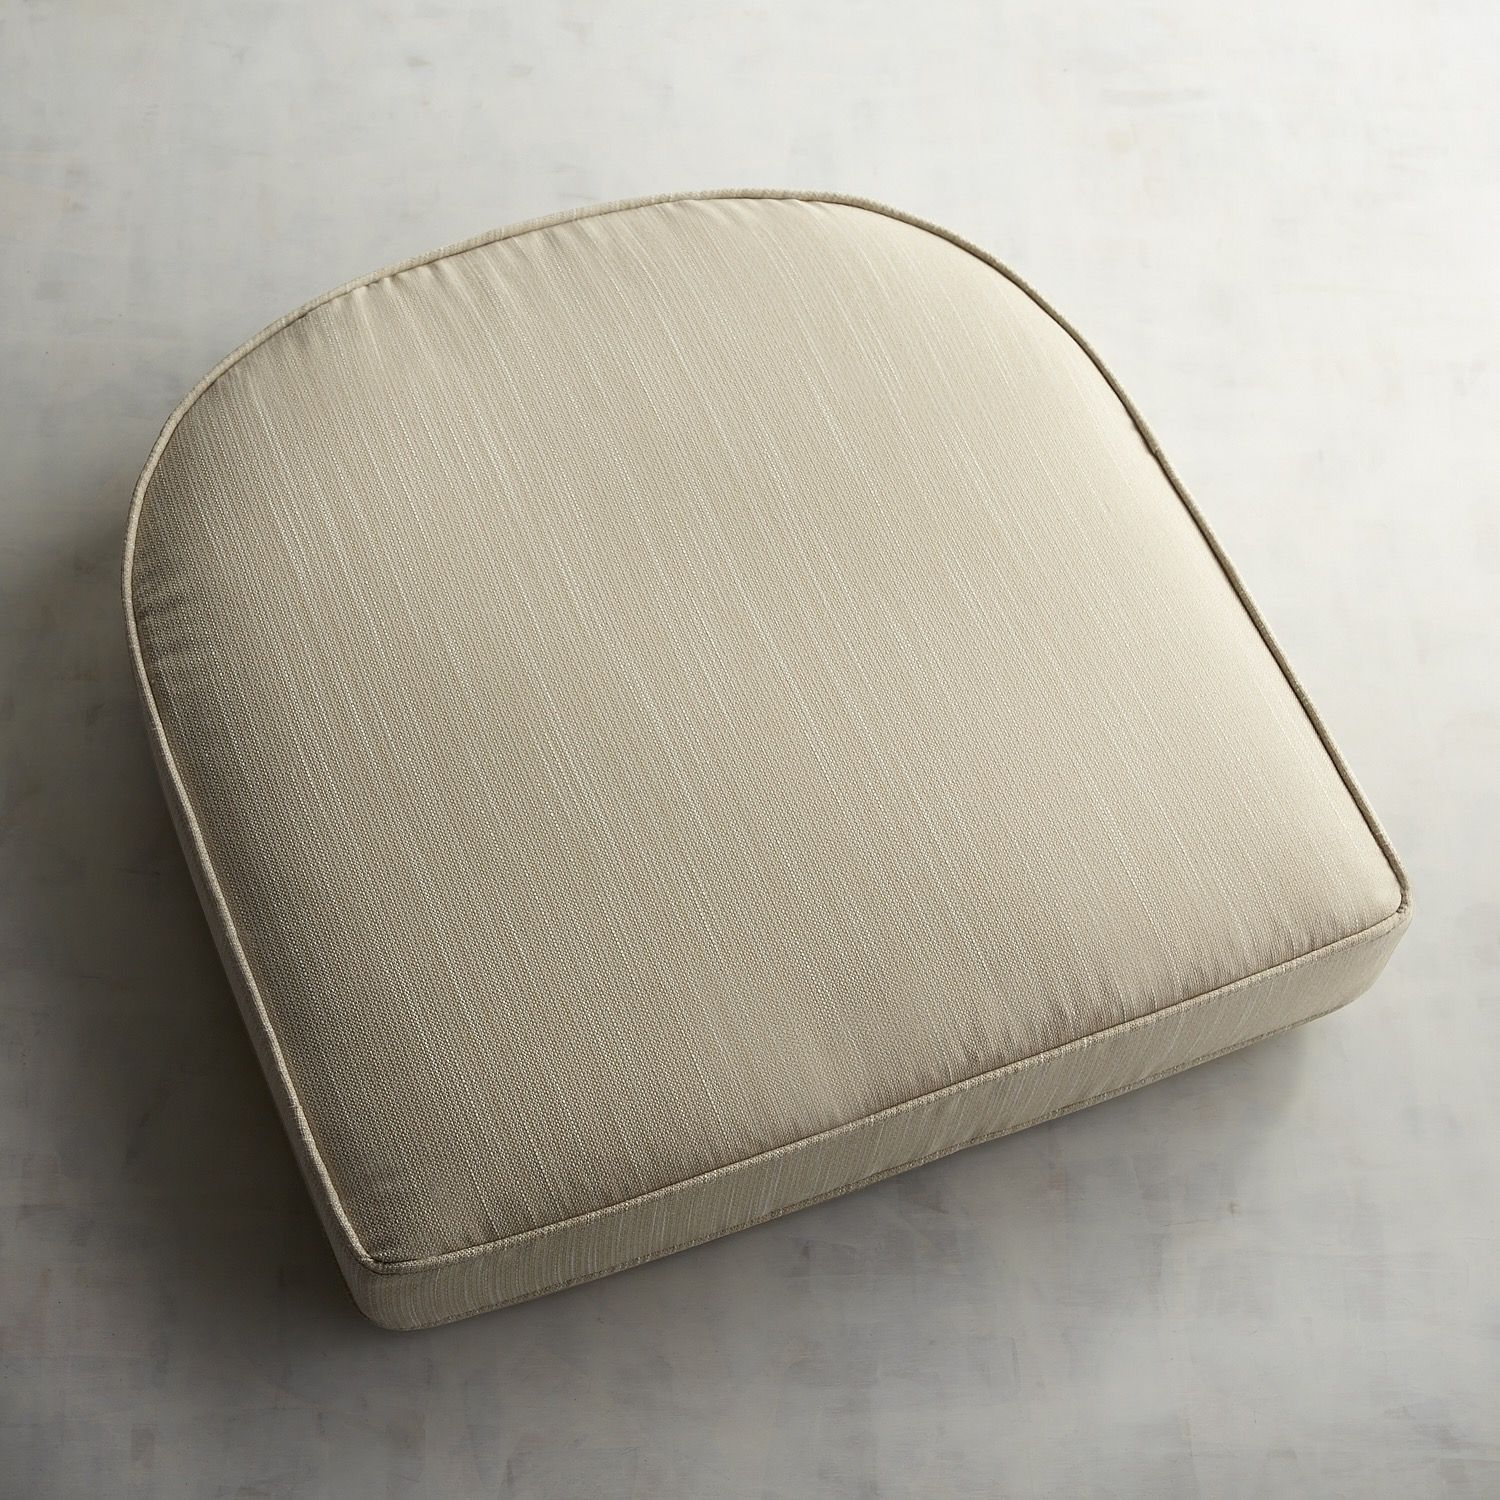 Large Contour Chair Cushion In Draper Bisque Natural